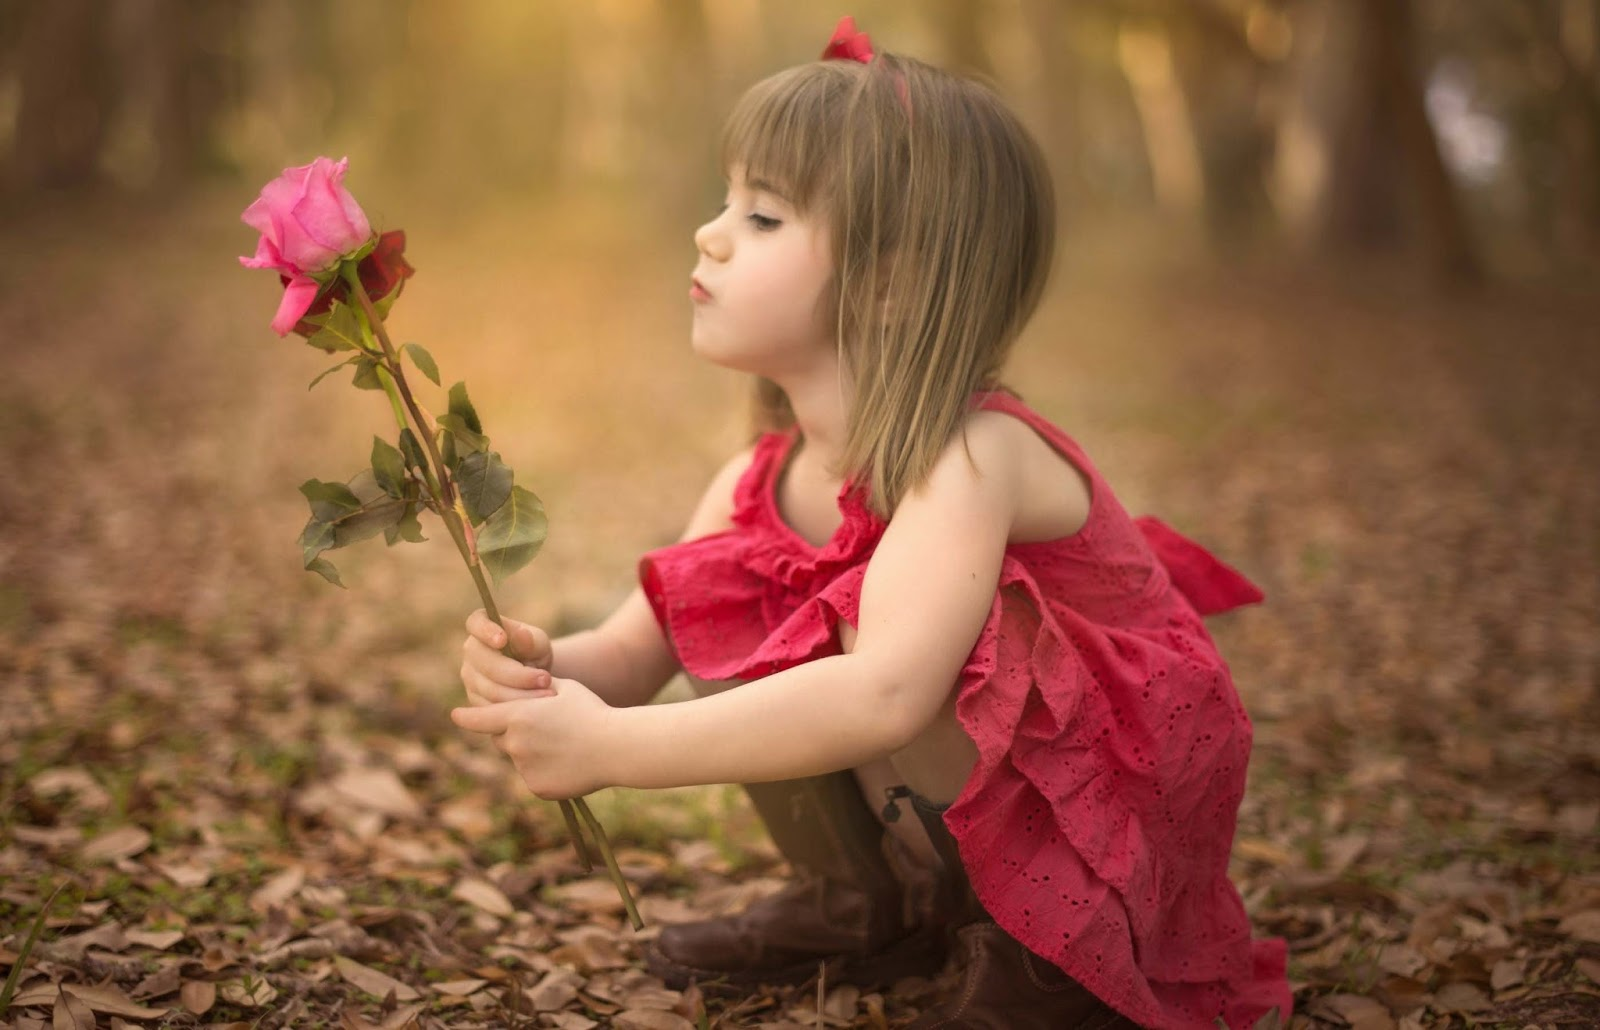 Cute and lovely baby pictures free download - Boy with rose wallpaper ...